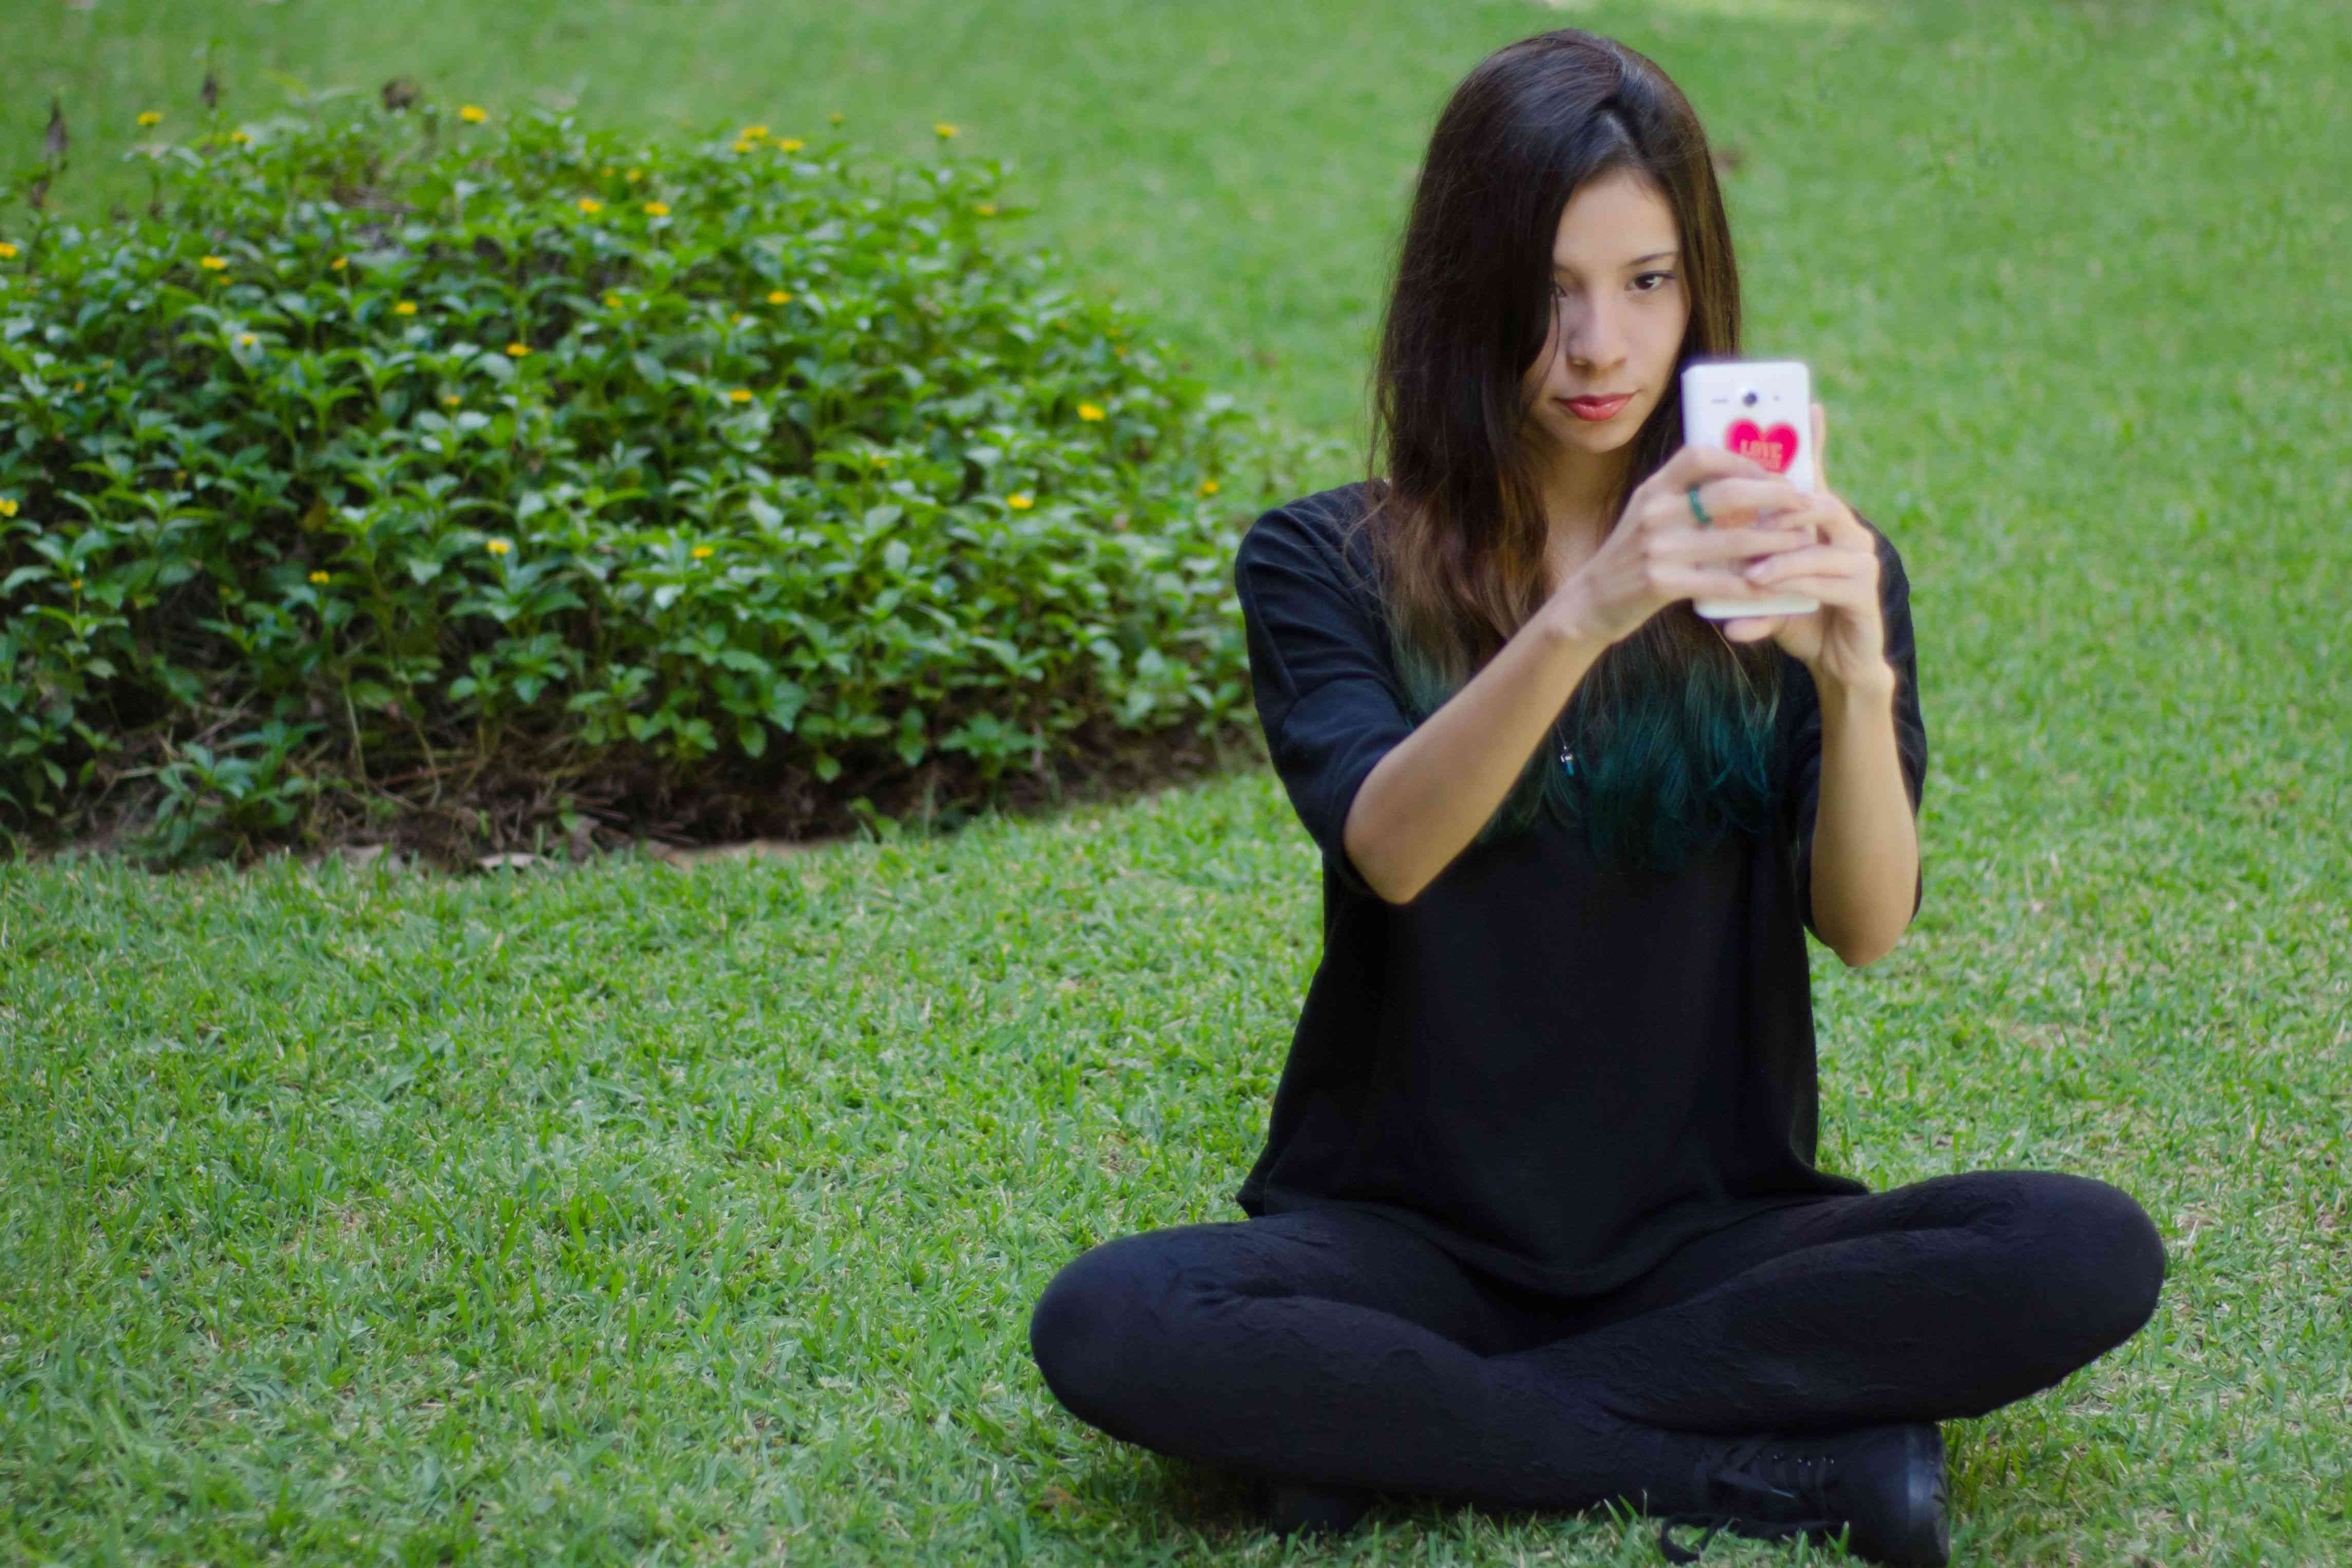 A person sitting on the grass using a cellphone